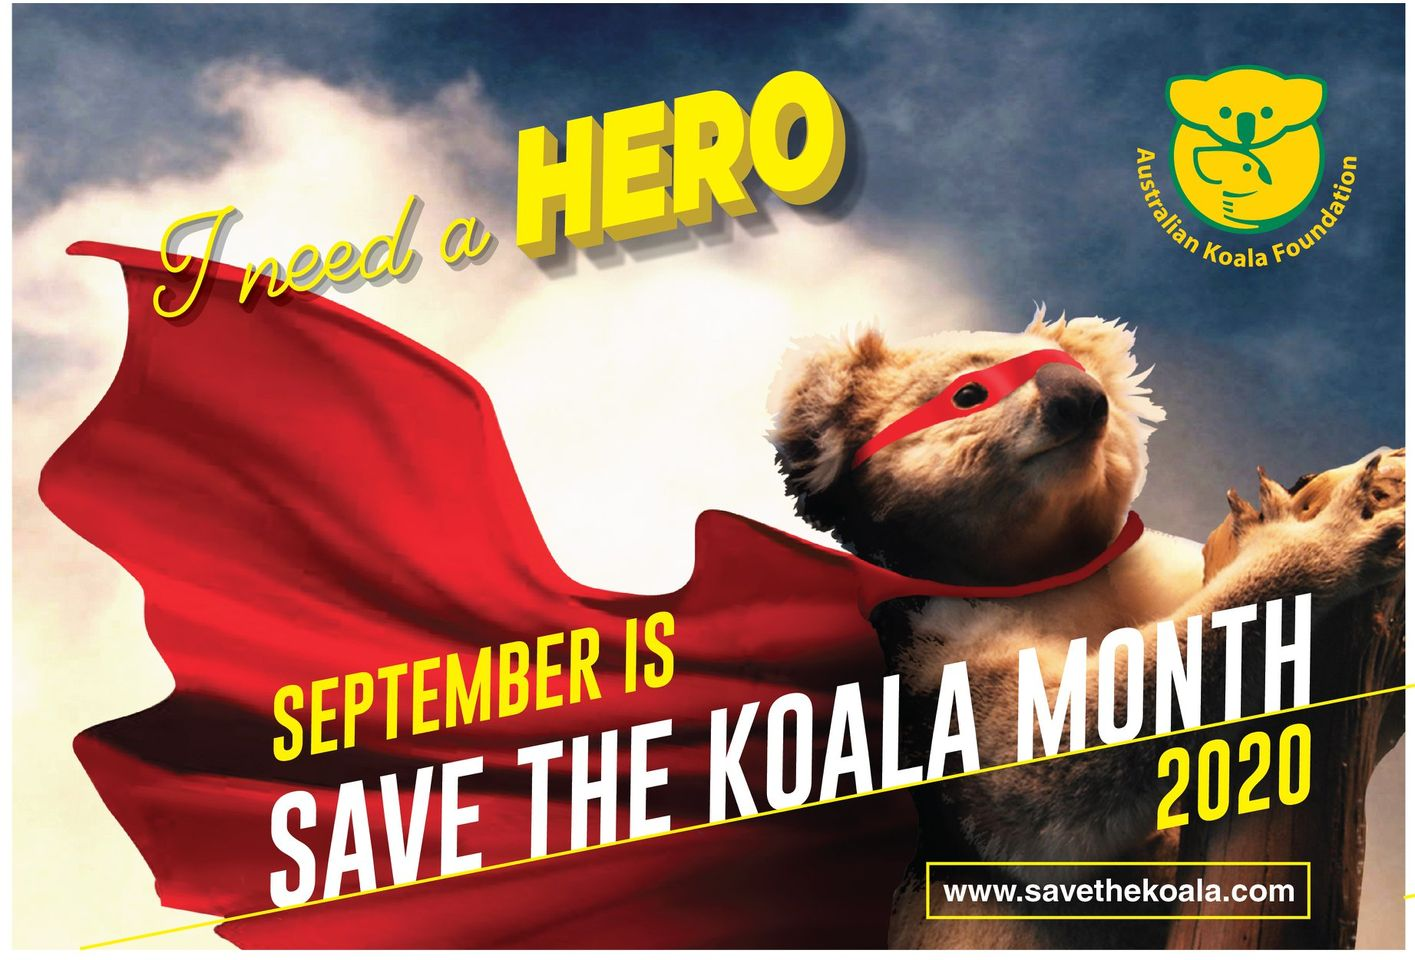 Australian Koala Foundation - Save The Koala Month